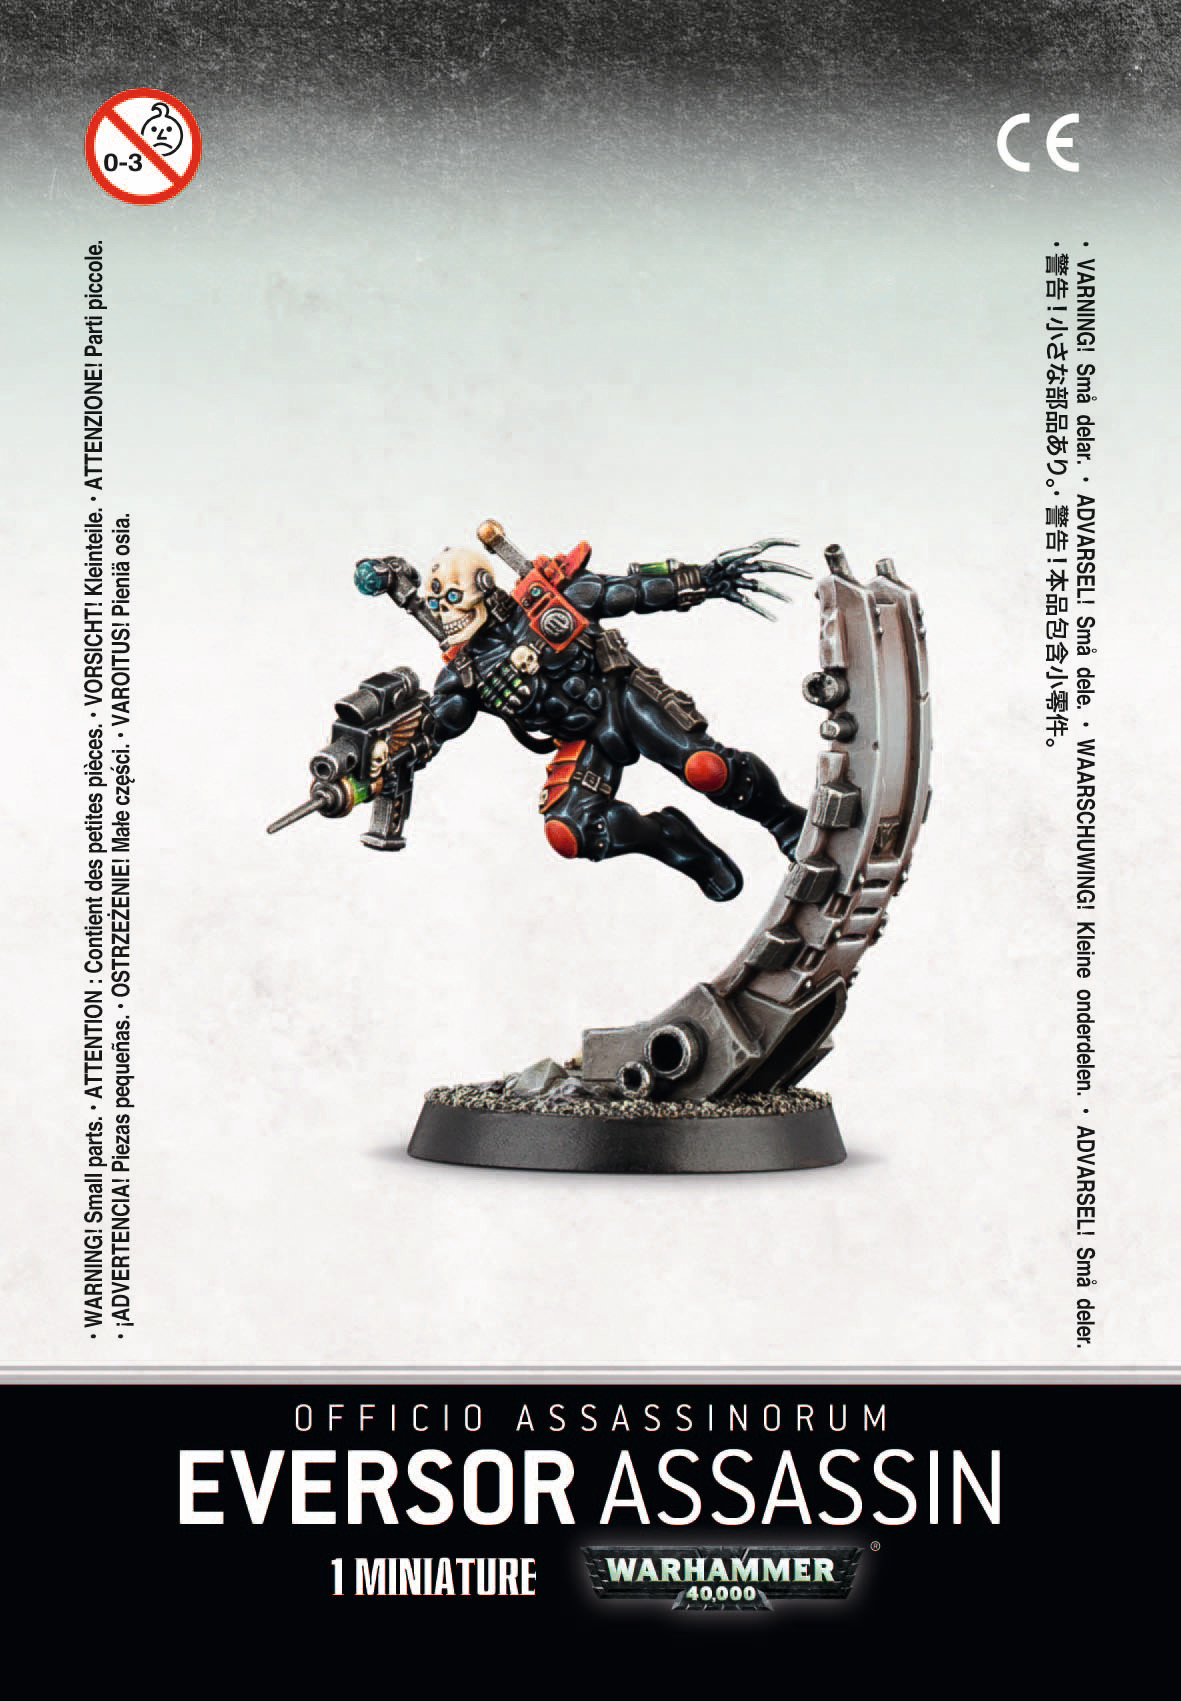 Games-Workshop Officio Assassinorum Eversor Assassin